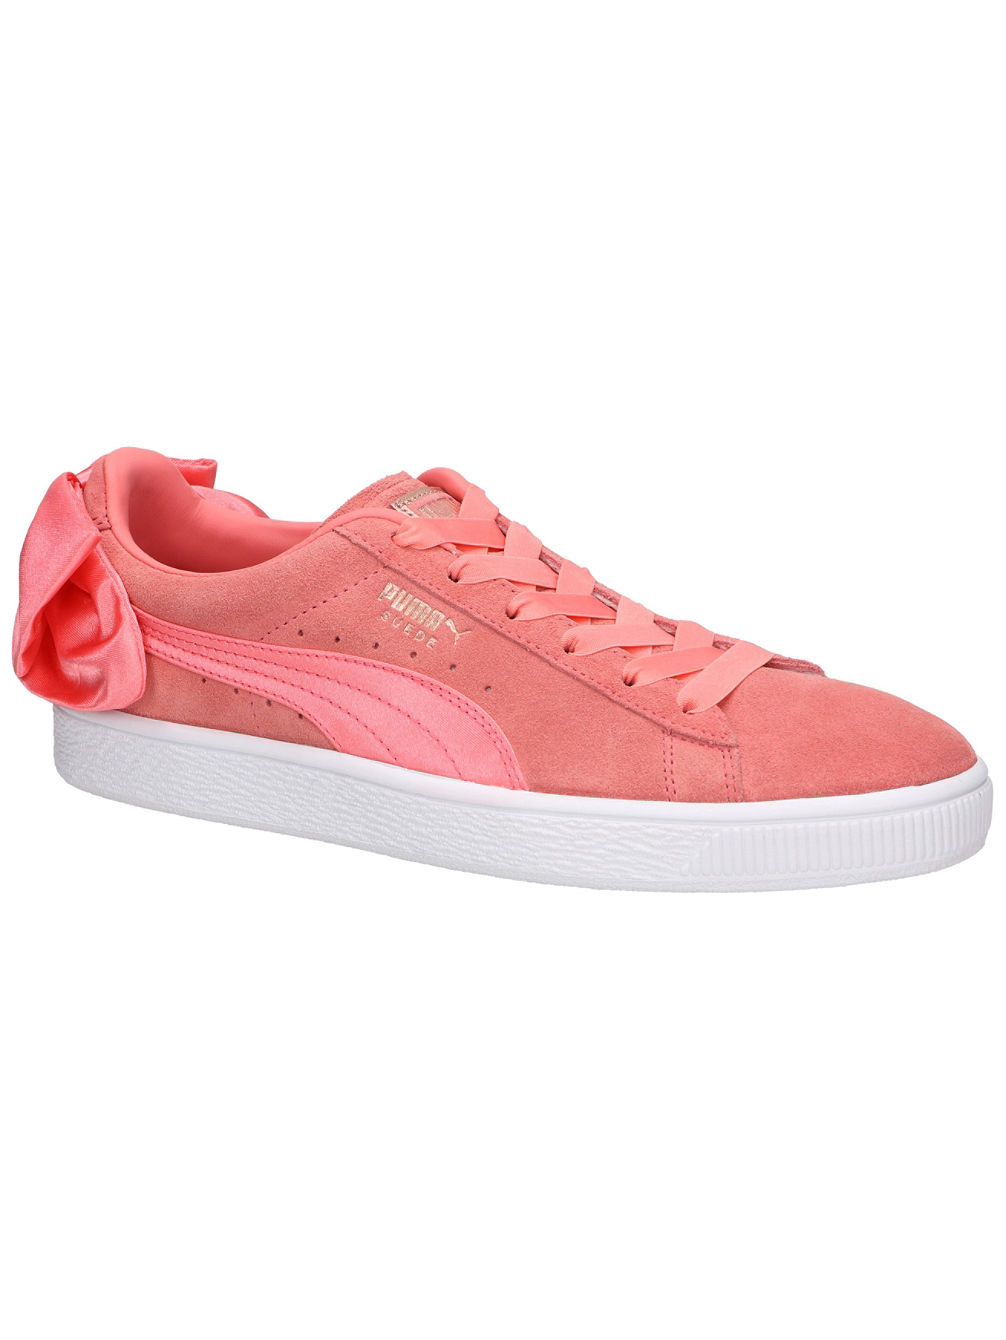 f15d81510faf Buy Puma Suede Bow Sneakers online at blue-tomato.com